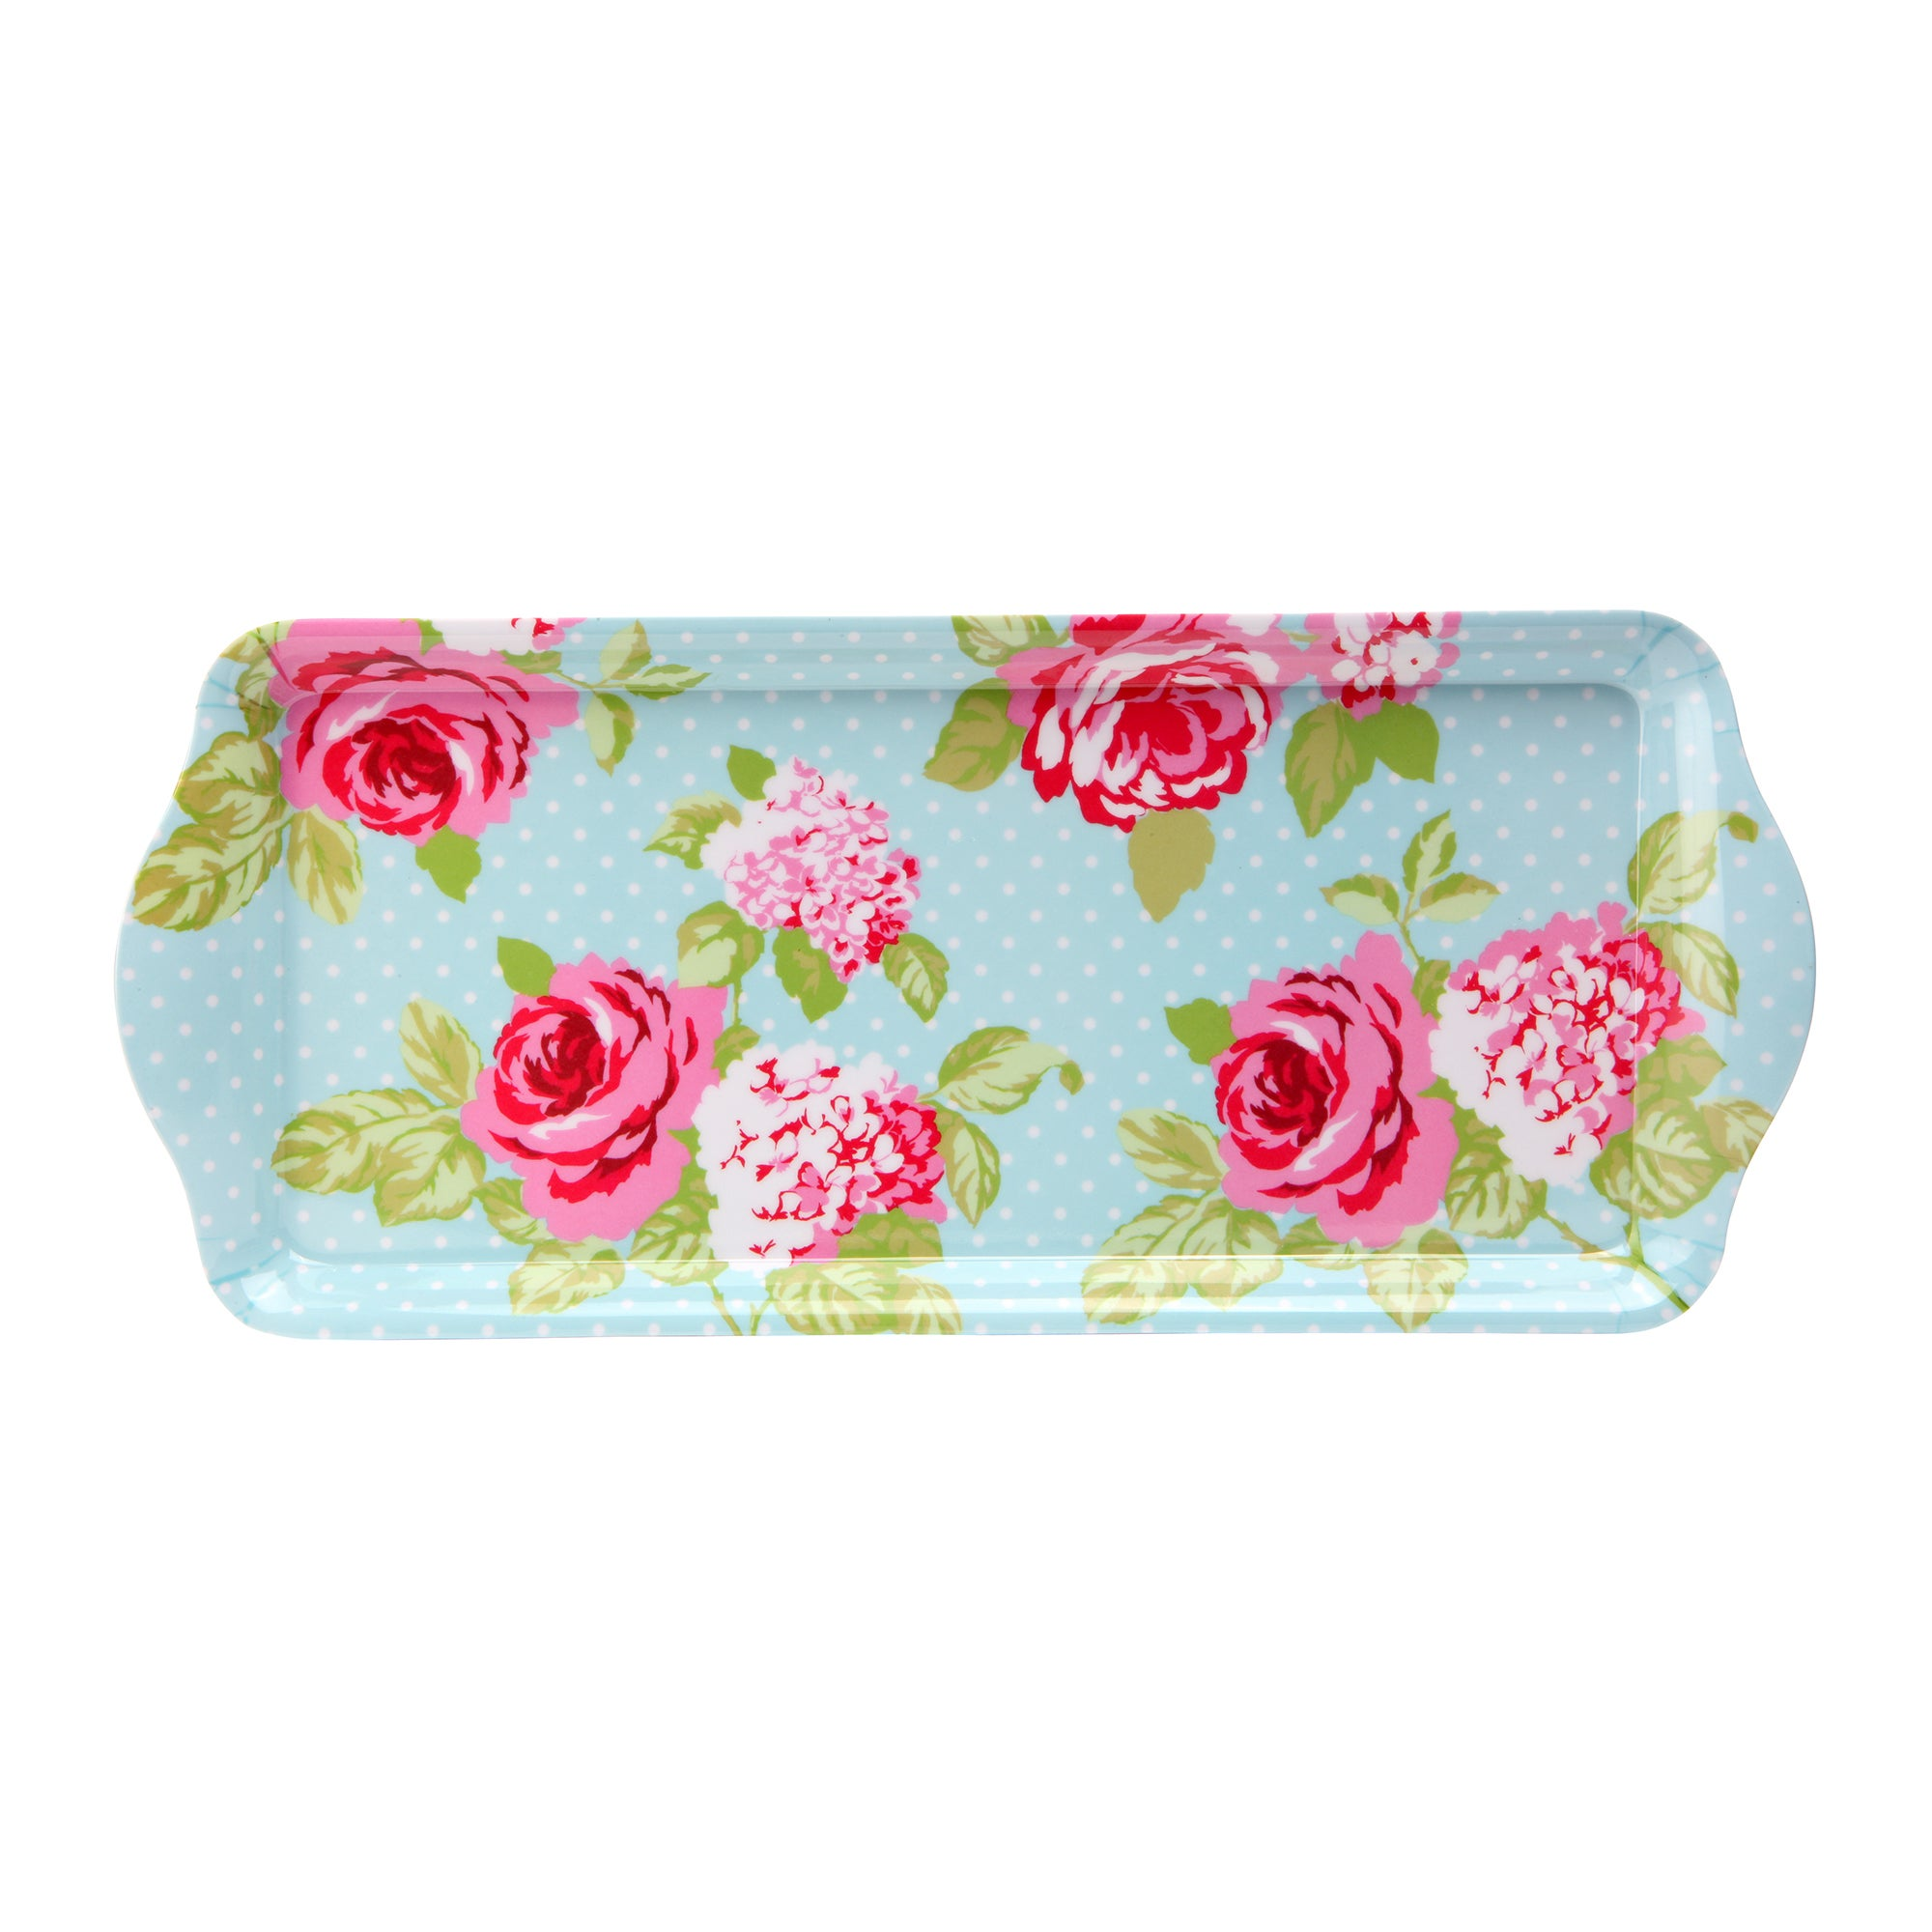 Rose and Ellis Clarendon Collection Small Tray